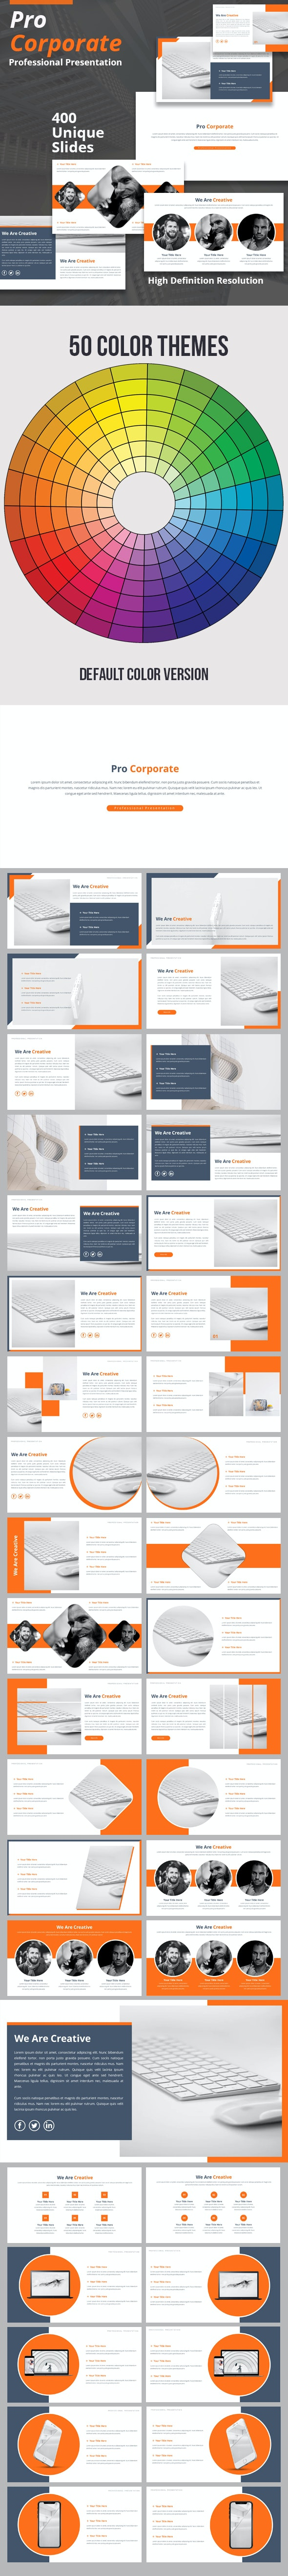 Pro Corporate Powerpoint Template - Business PowerPoint Templates